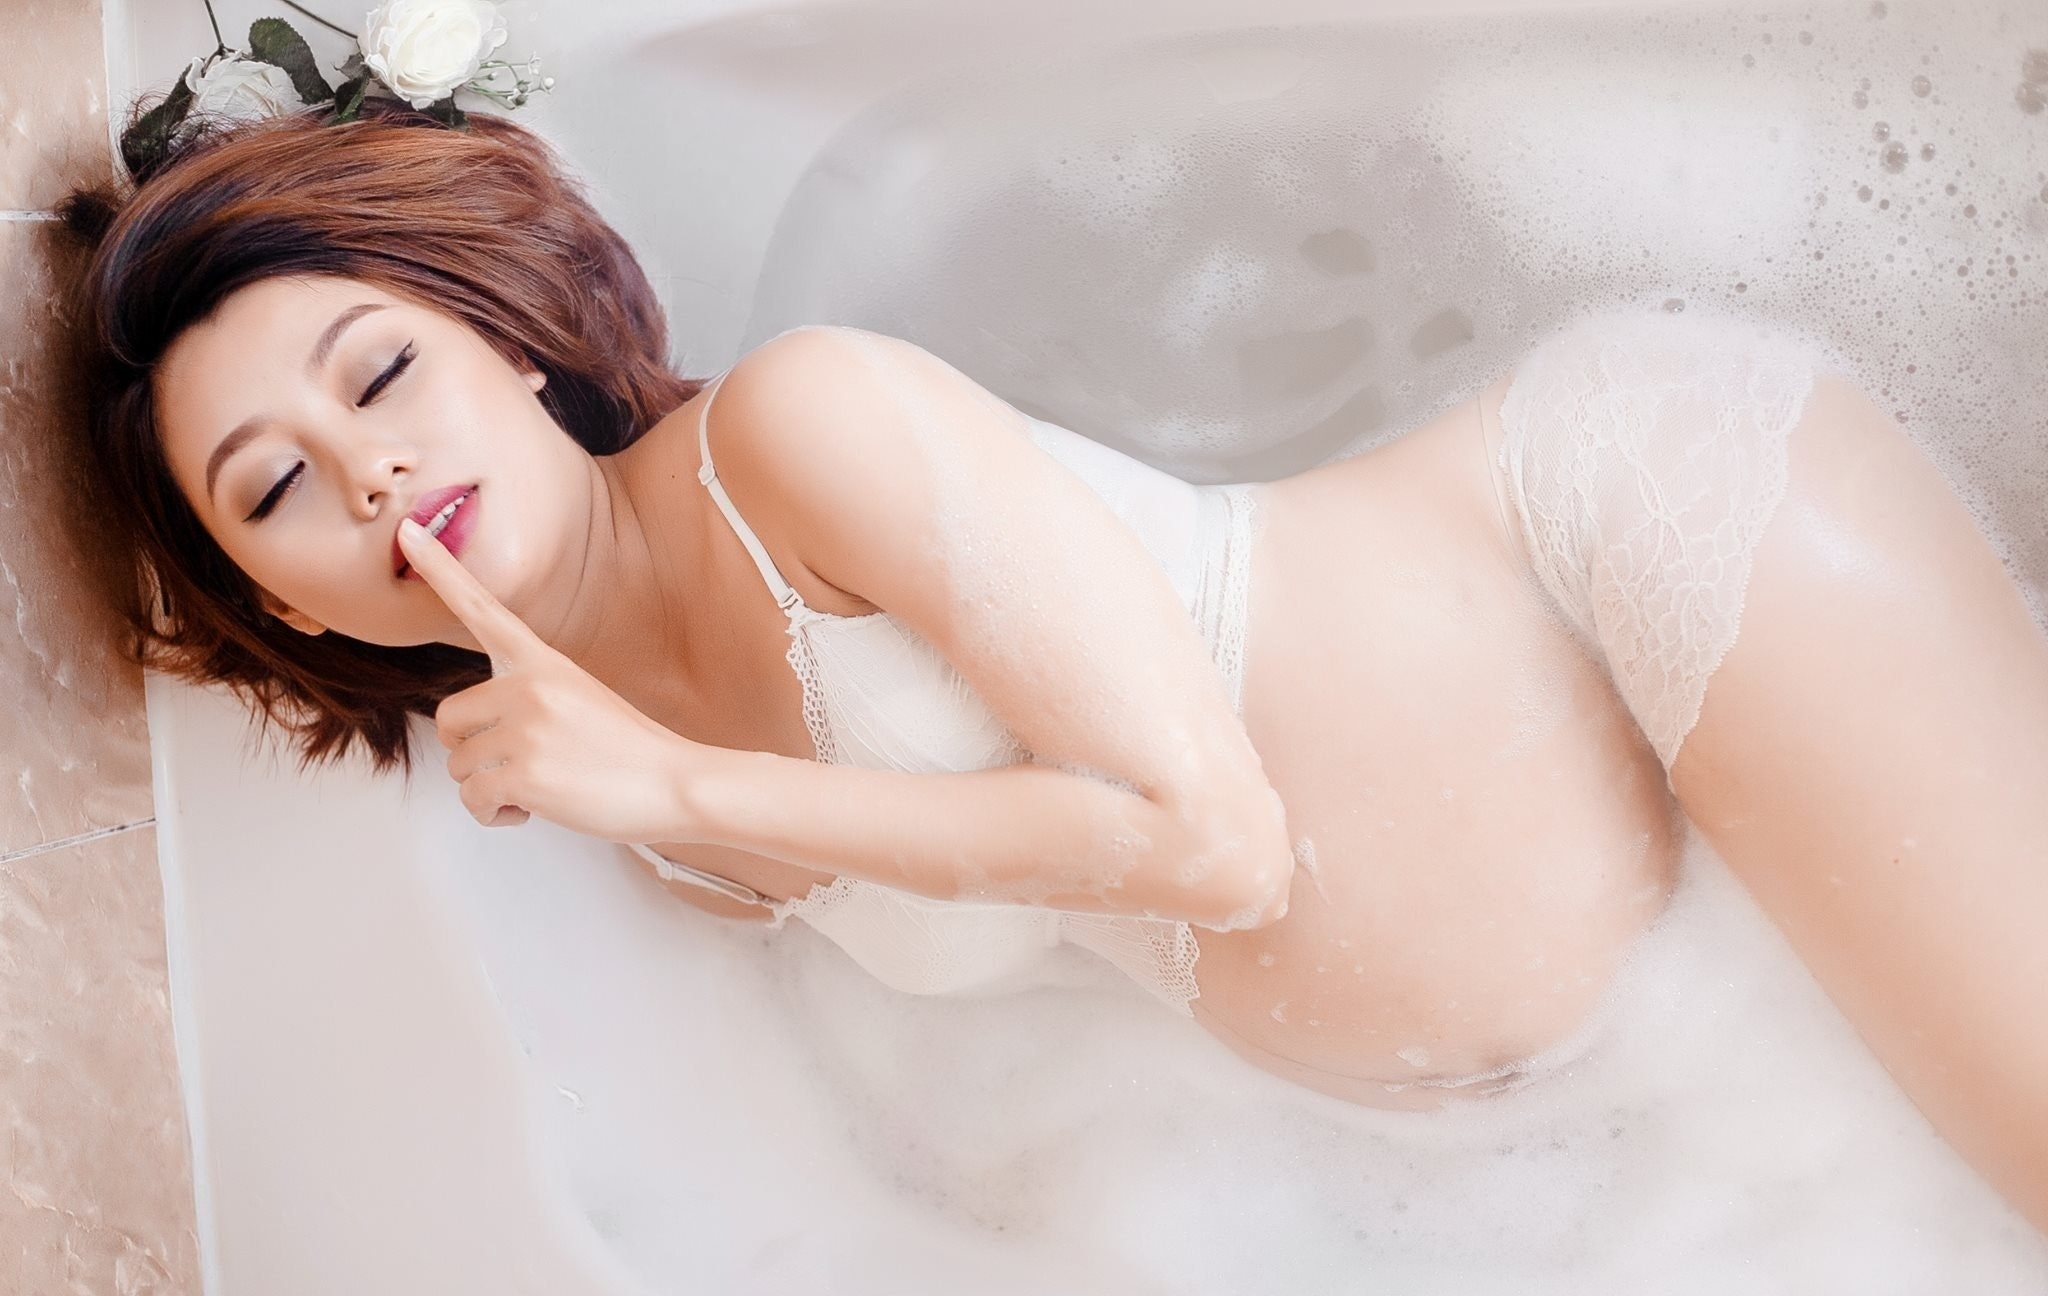 Pregnant Woman Lying On Bathtub  Free Stock Photo-9049